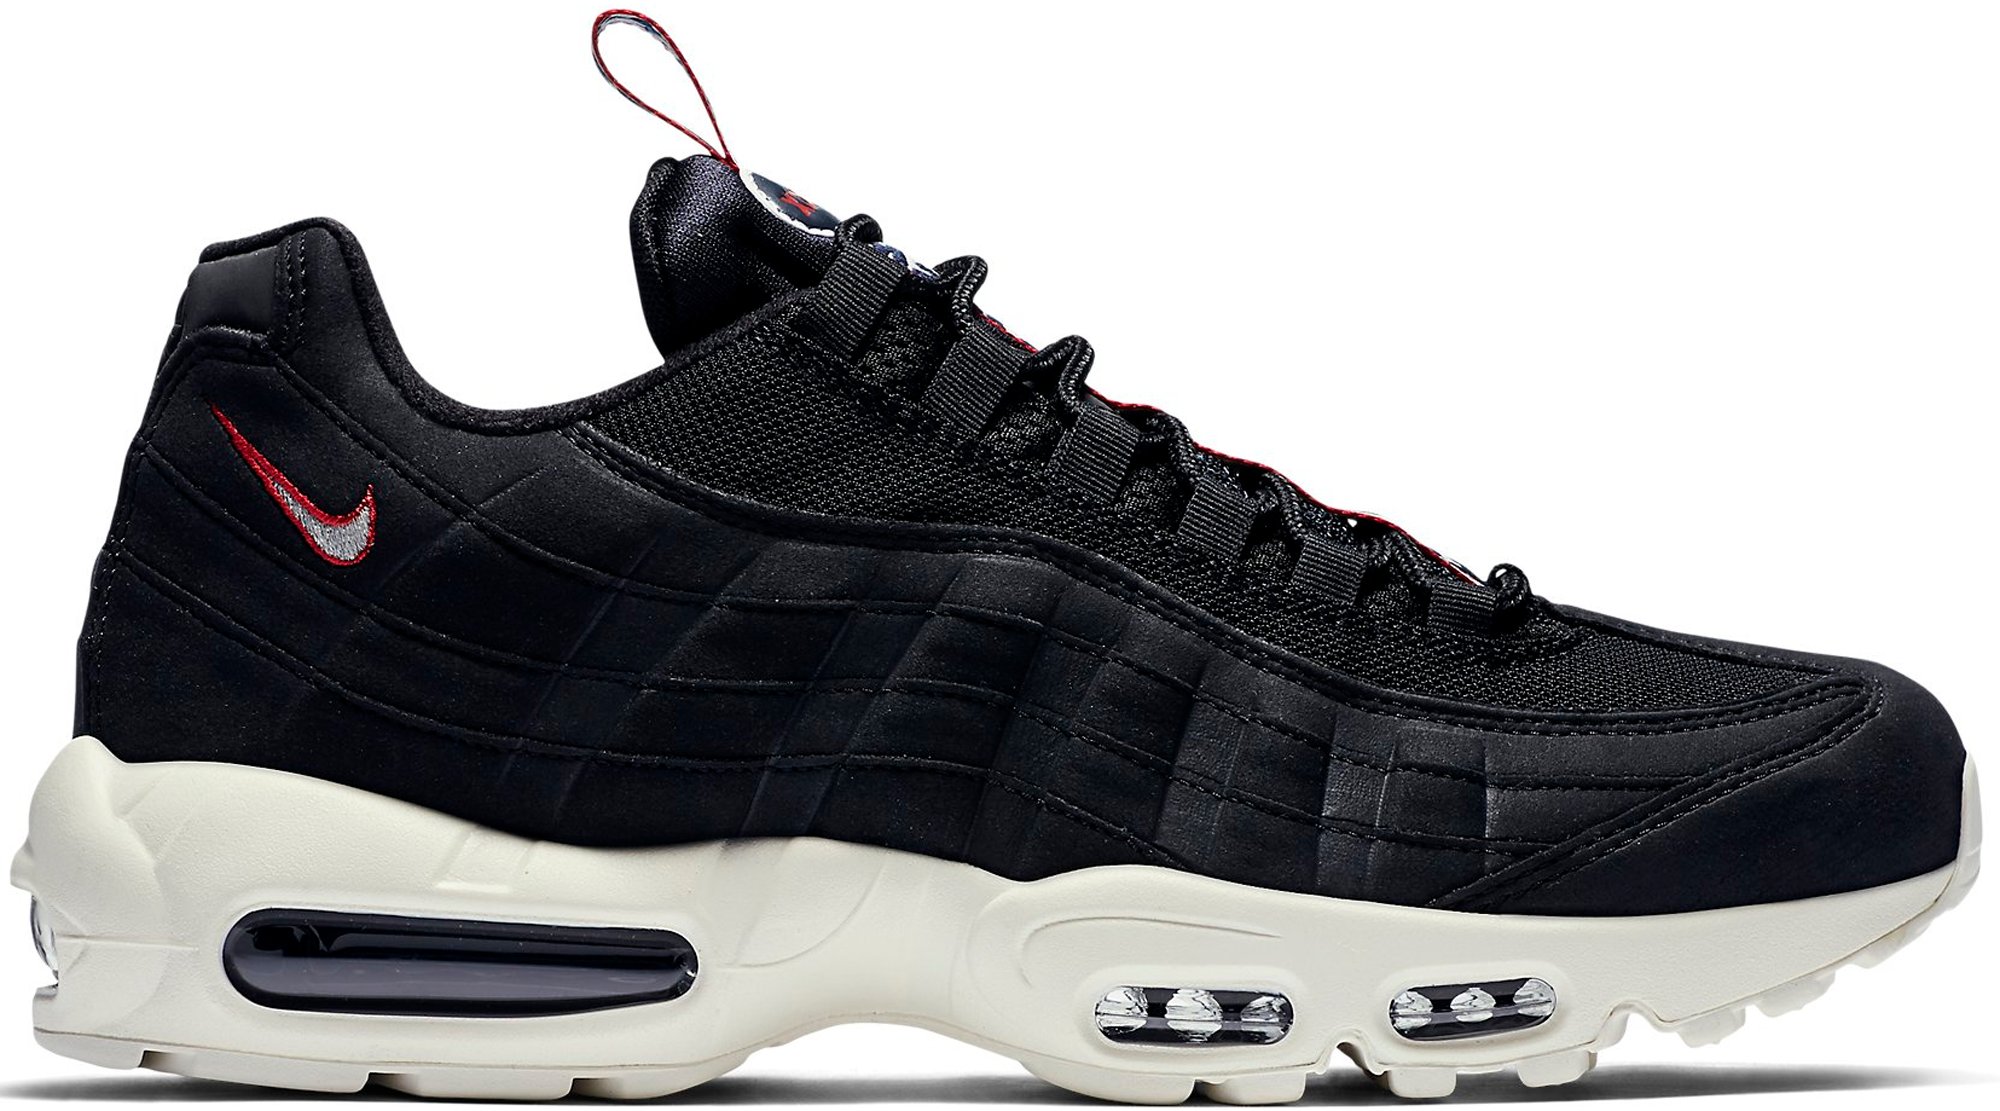 nike air max 95 pull tab black. Black Bedroom Furniture Sets. Home Design Ideas